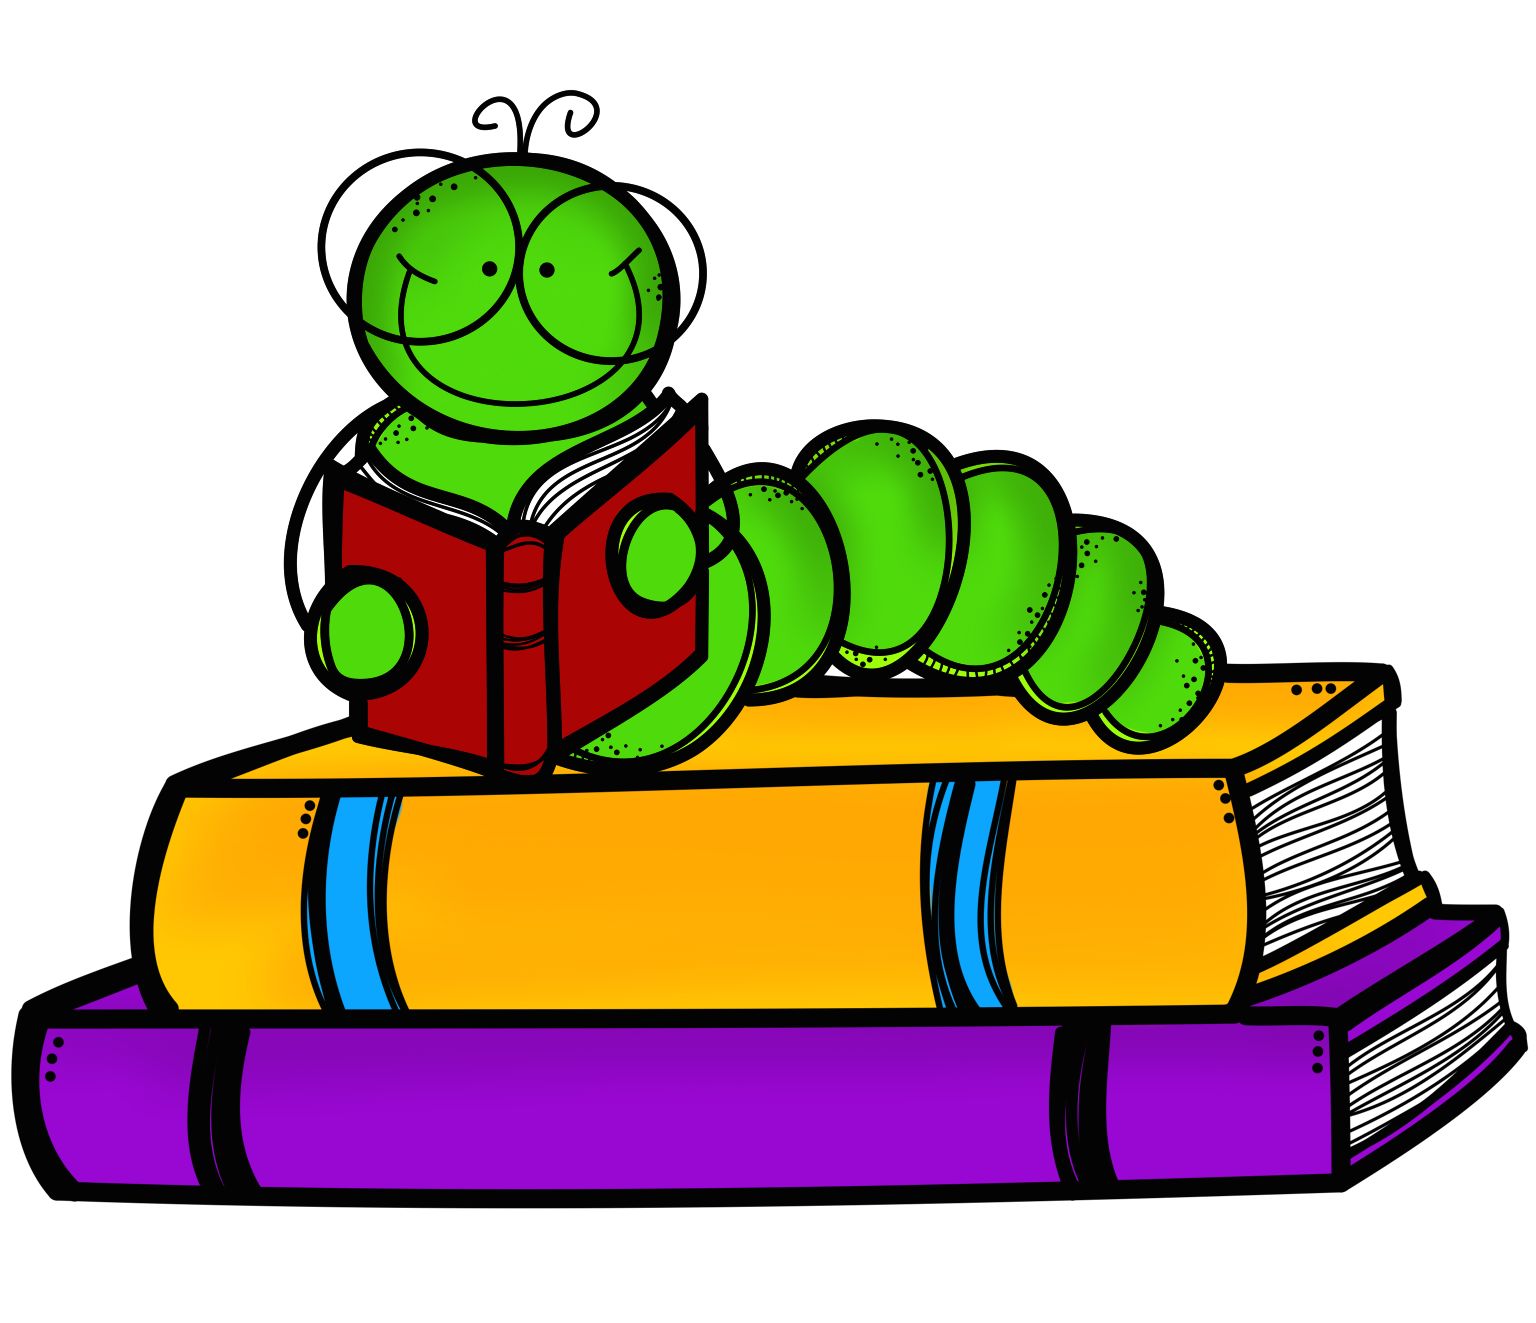 Girl holding reading book clipart clipart library download Stack cliparts | Add cool graphics! | Pinterest | Clip art and Craft clipart library download